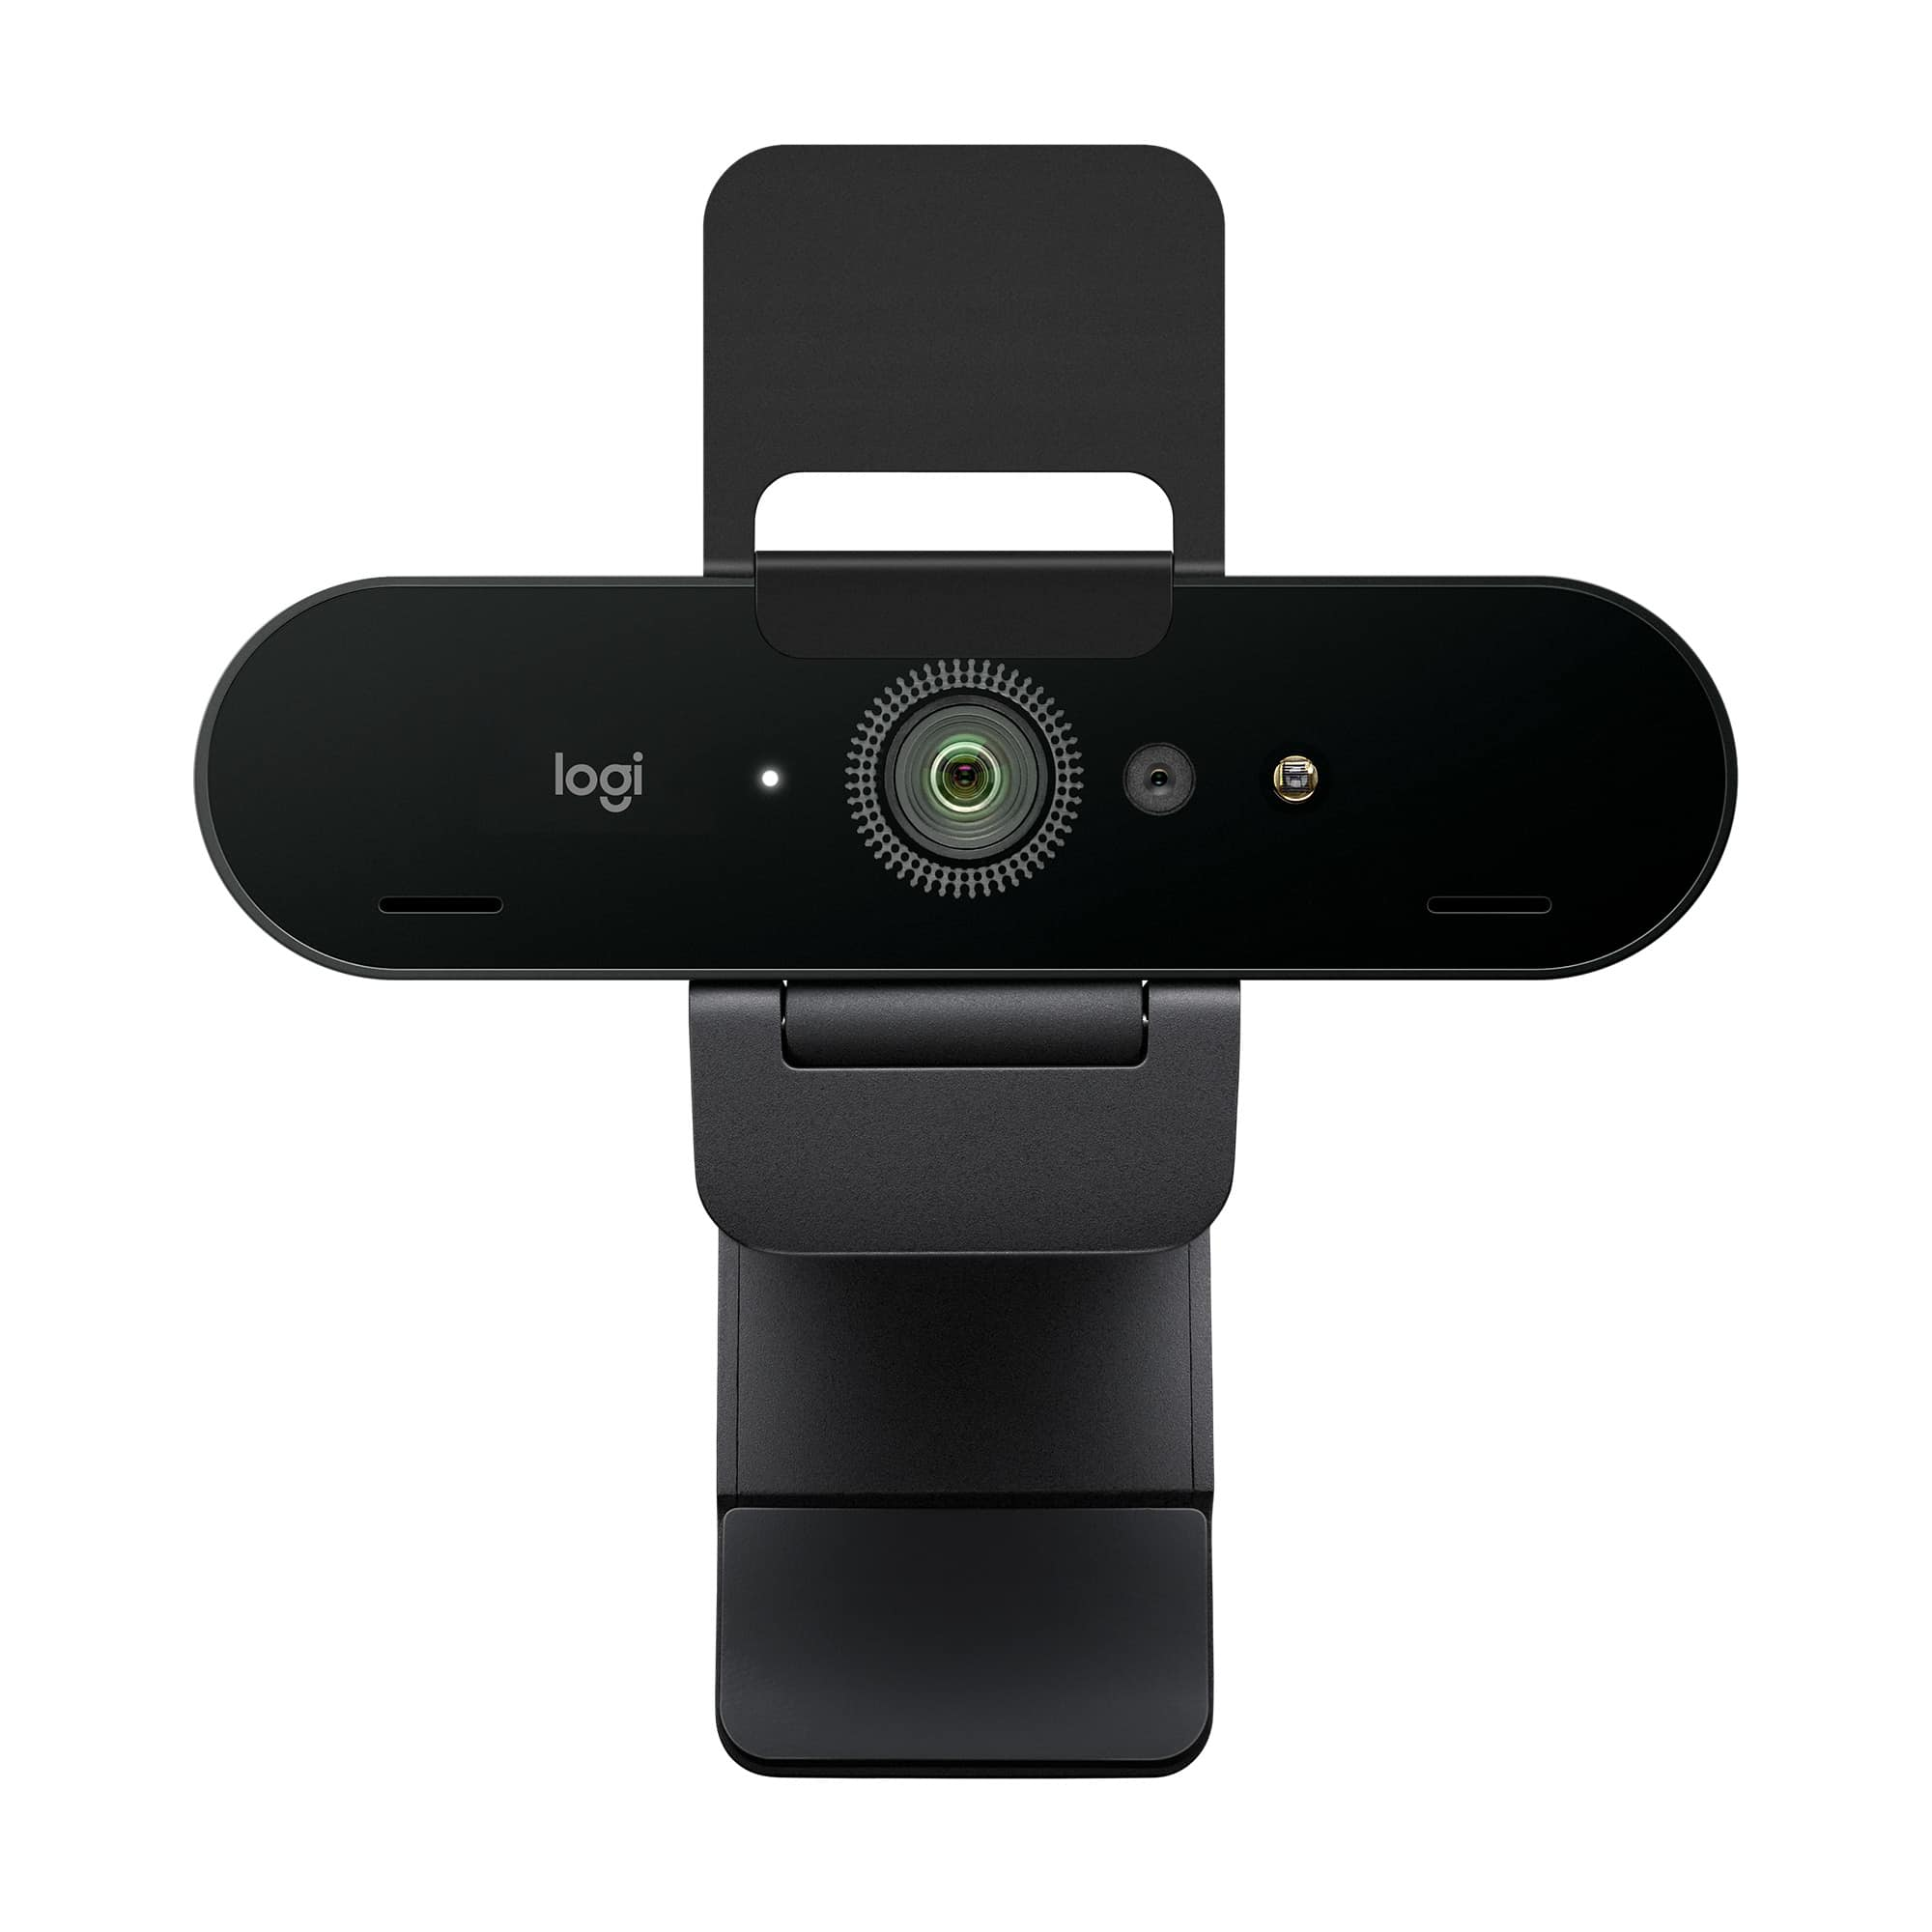 Logitech Brio 4k Stream Edition Webcam digitaler 5-fach-Zoom Full-HD Autofokus für 199,00 Euro